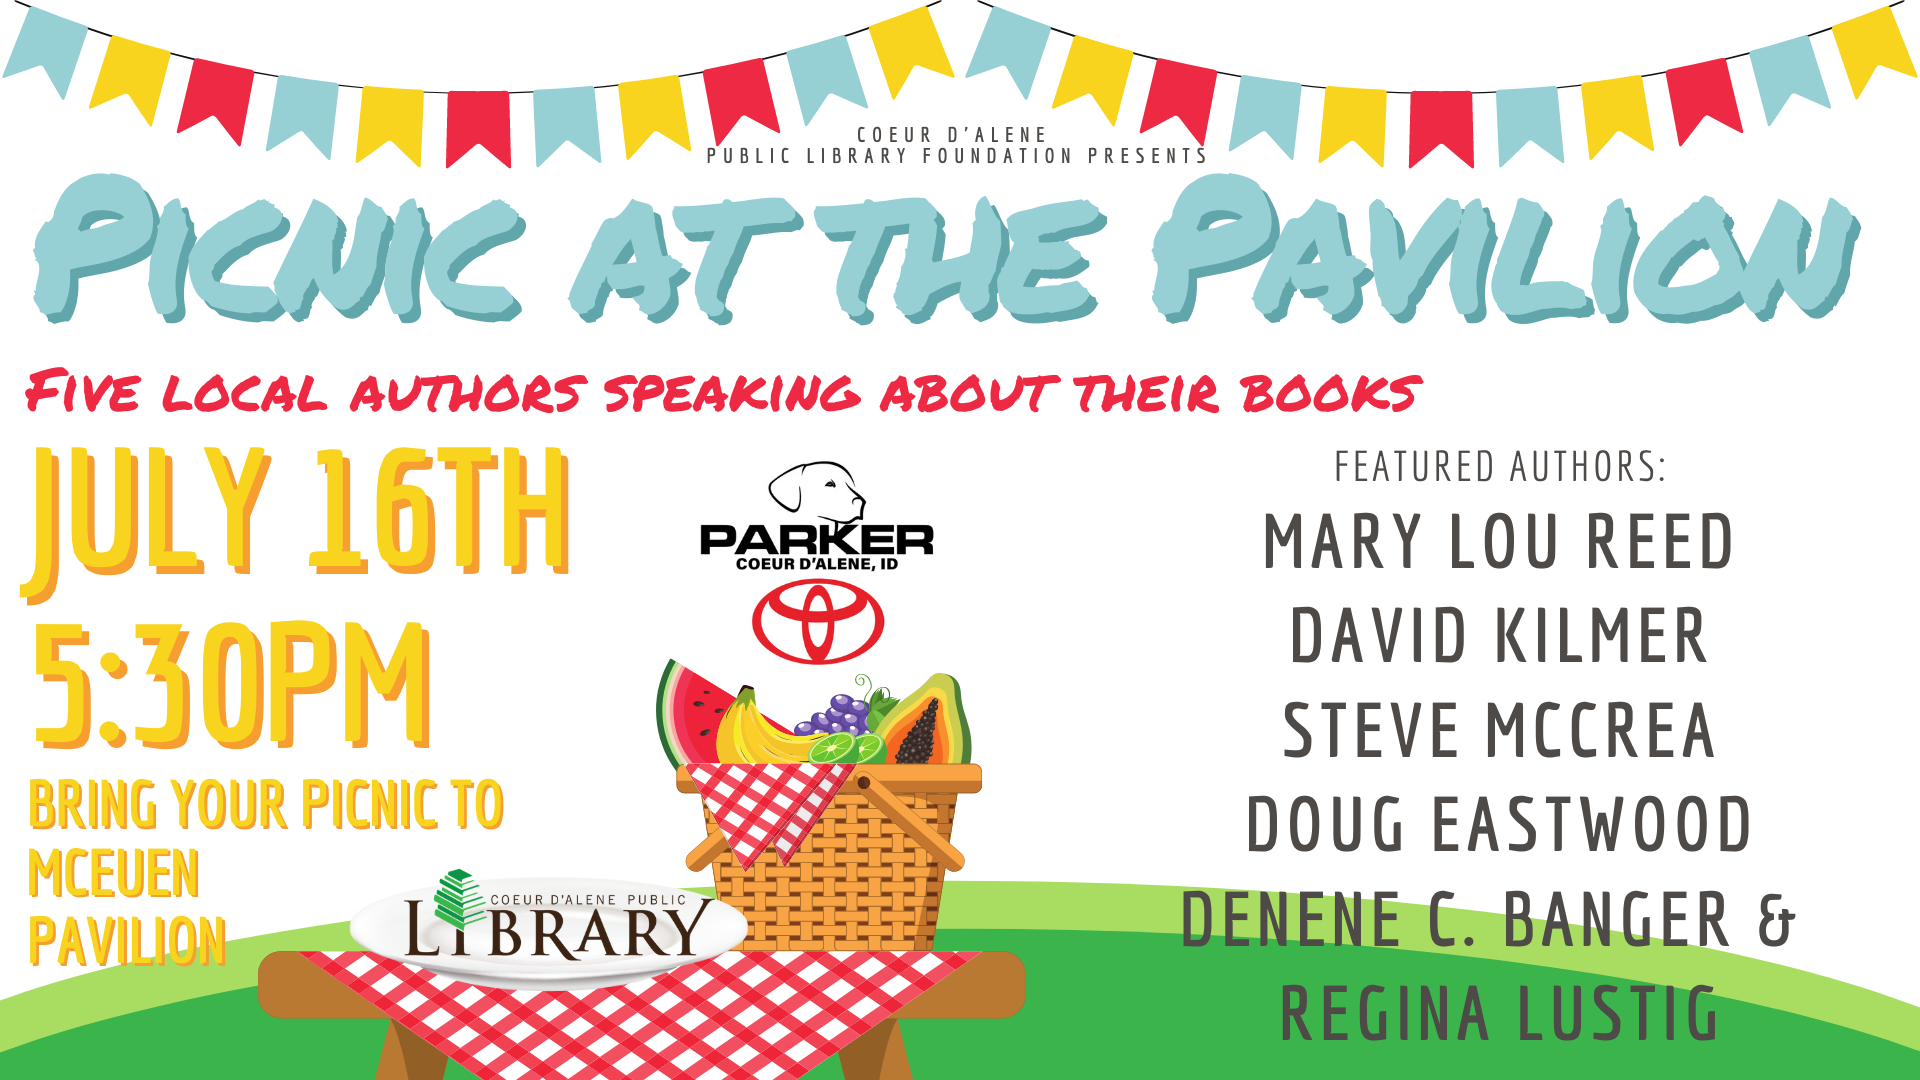 FRIDAY, JULY 16, 2021 AT 5:30 PM PDT Picnic at the Pavilion: Five local authors speaking about their books